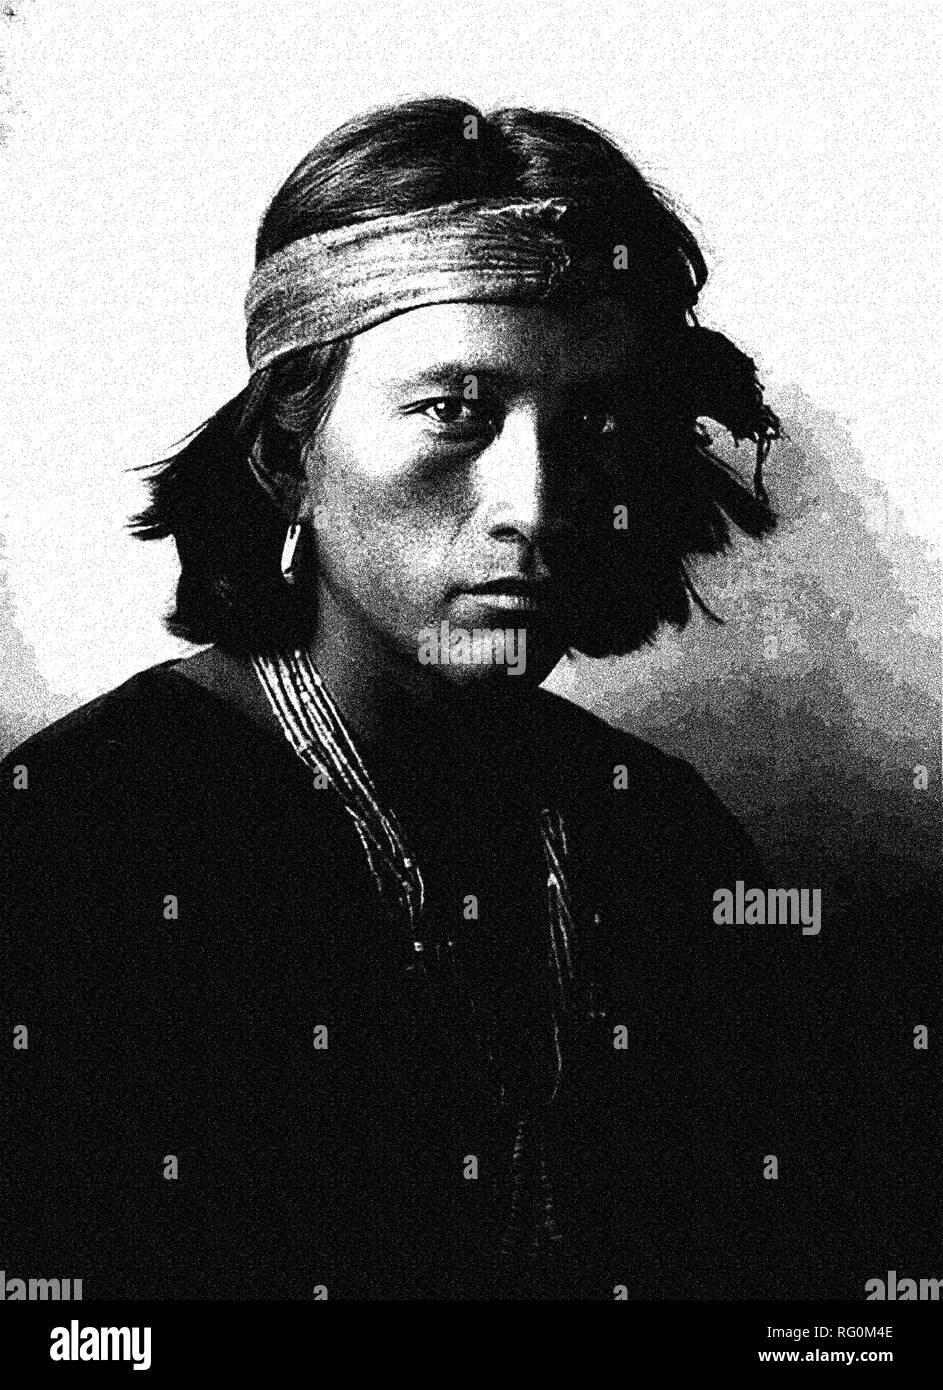 Native American Indian Portrait Profile Series -Navajo youth Poster.jpg - RG0M4E  - Stock Image